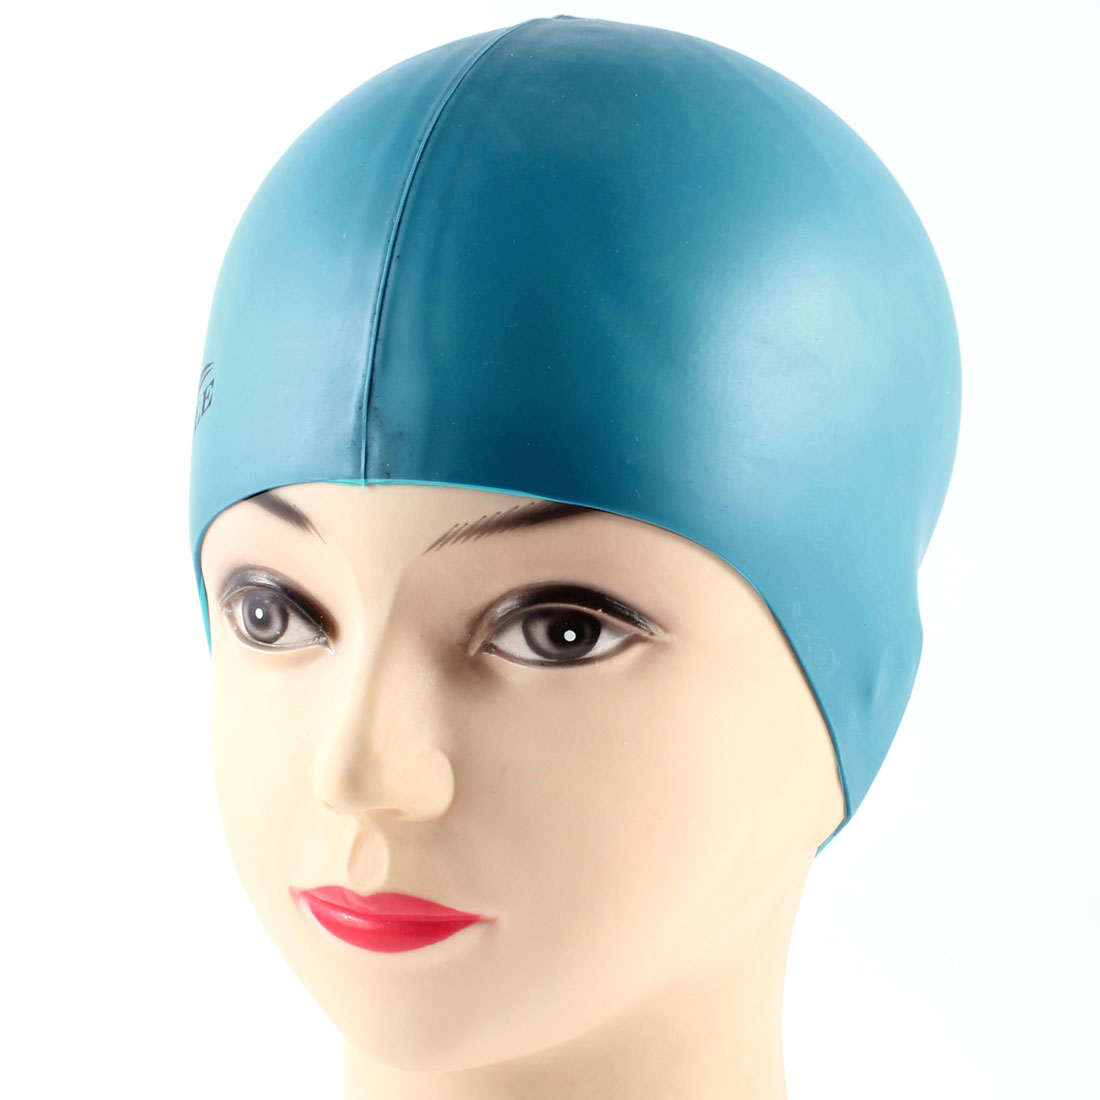 Adults Stretchy Dome Shaped Silicone Swimming Diving Swim Cap Hat Teal Blue